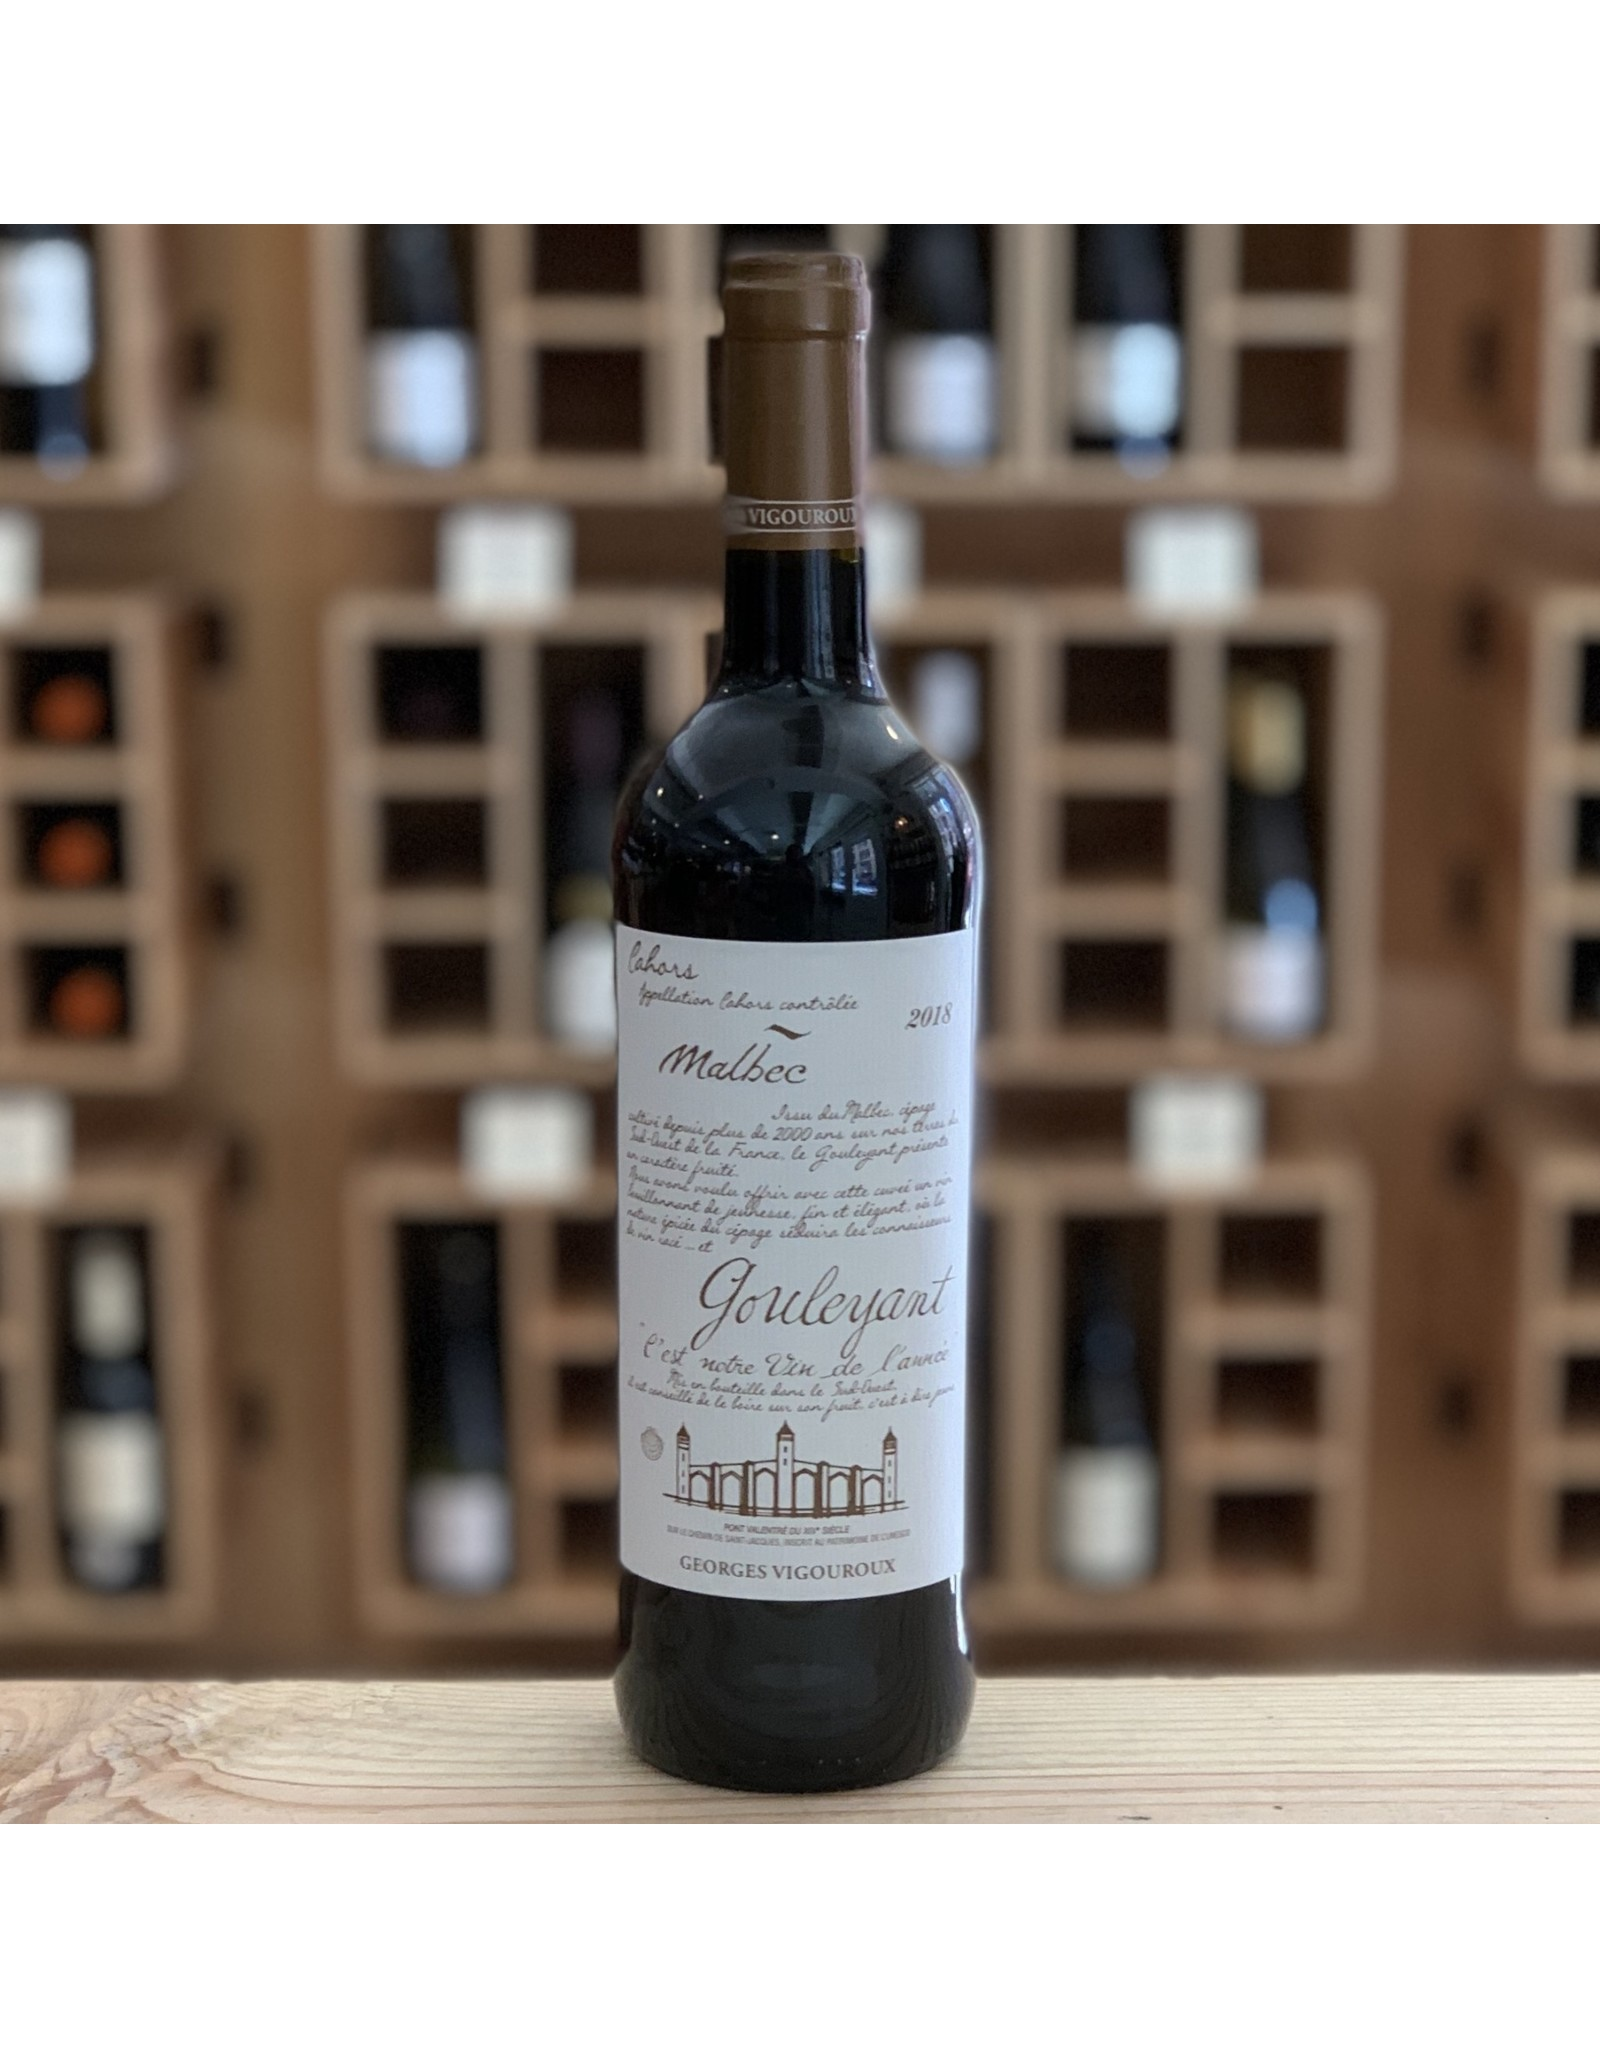 Cahors Georges Vigouroux Cot ''Gouleyant'' Malbec 2018 - Cahors, France